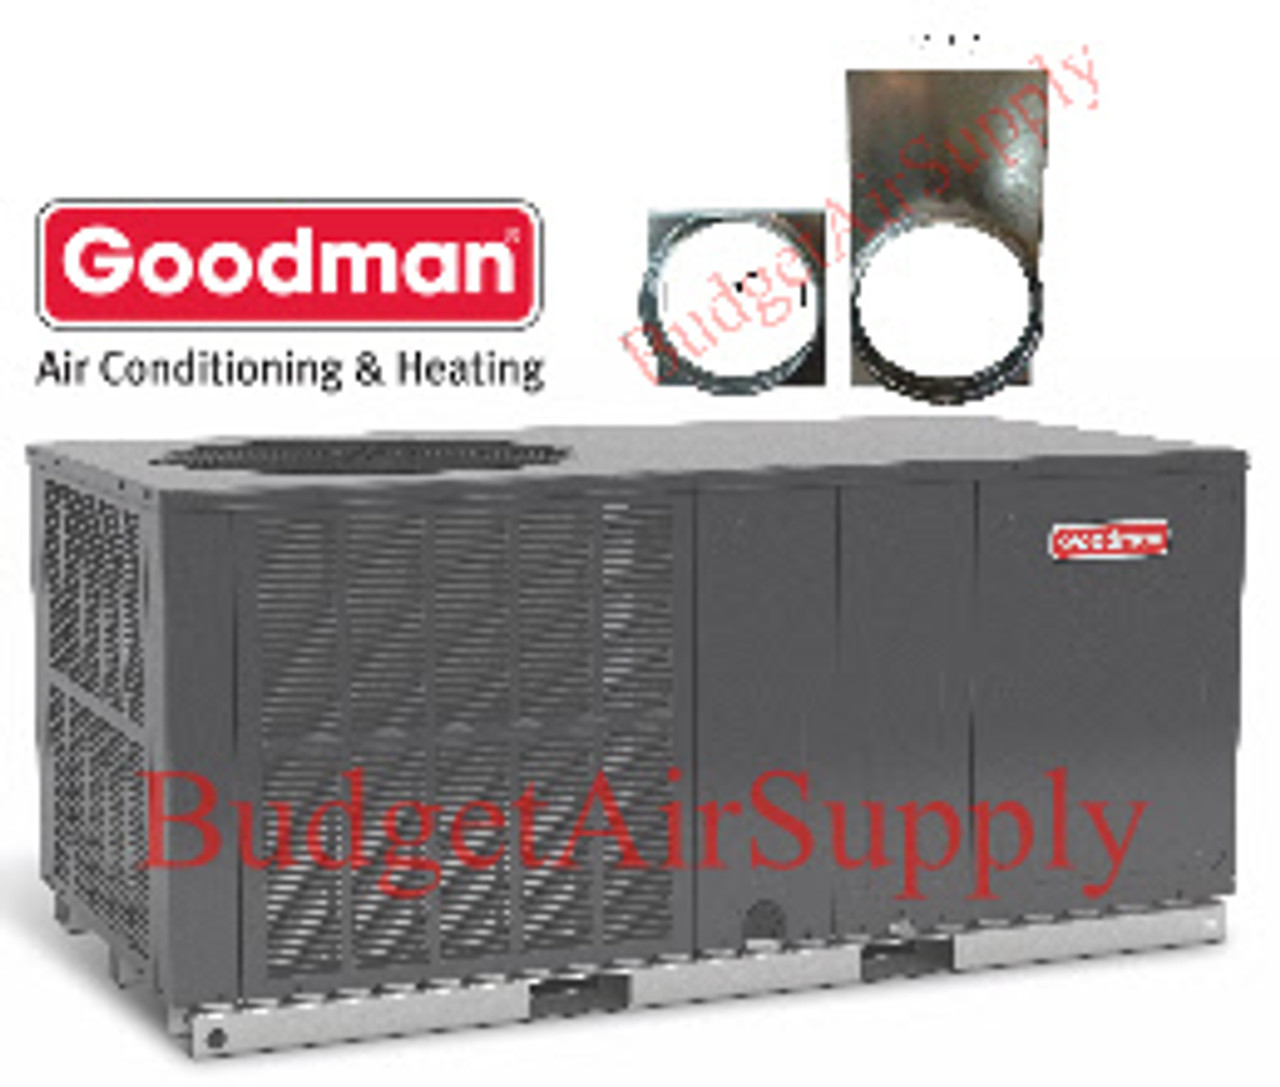 medium resolution of goodman 3 1 2 3 5 ton 14 seer gph1442h41 packaged heat pump a c free adapters budget air supply